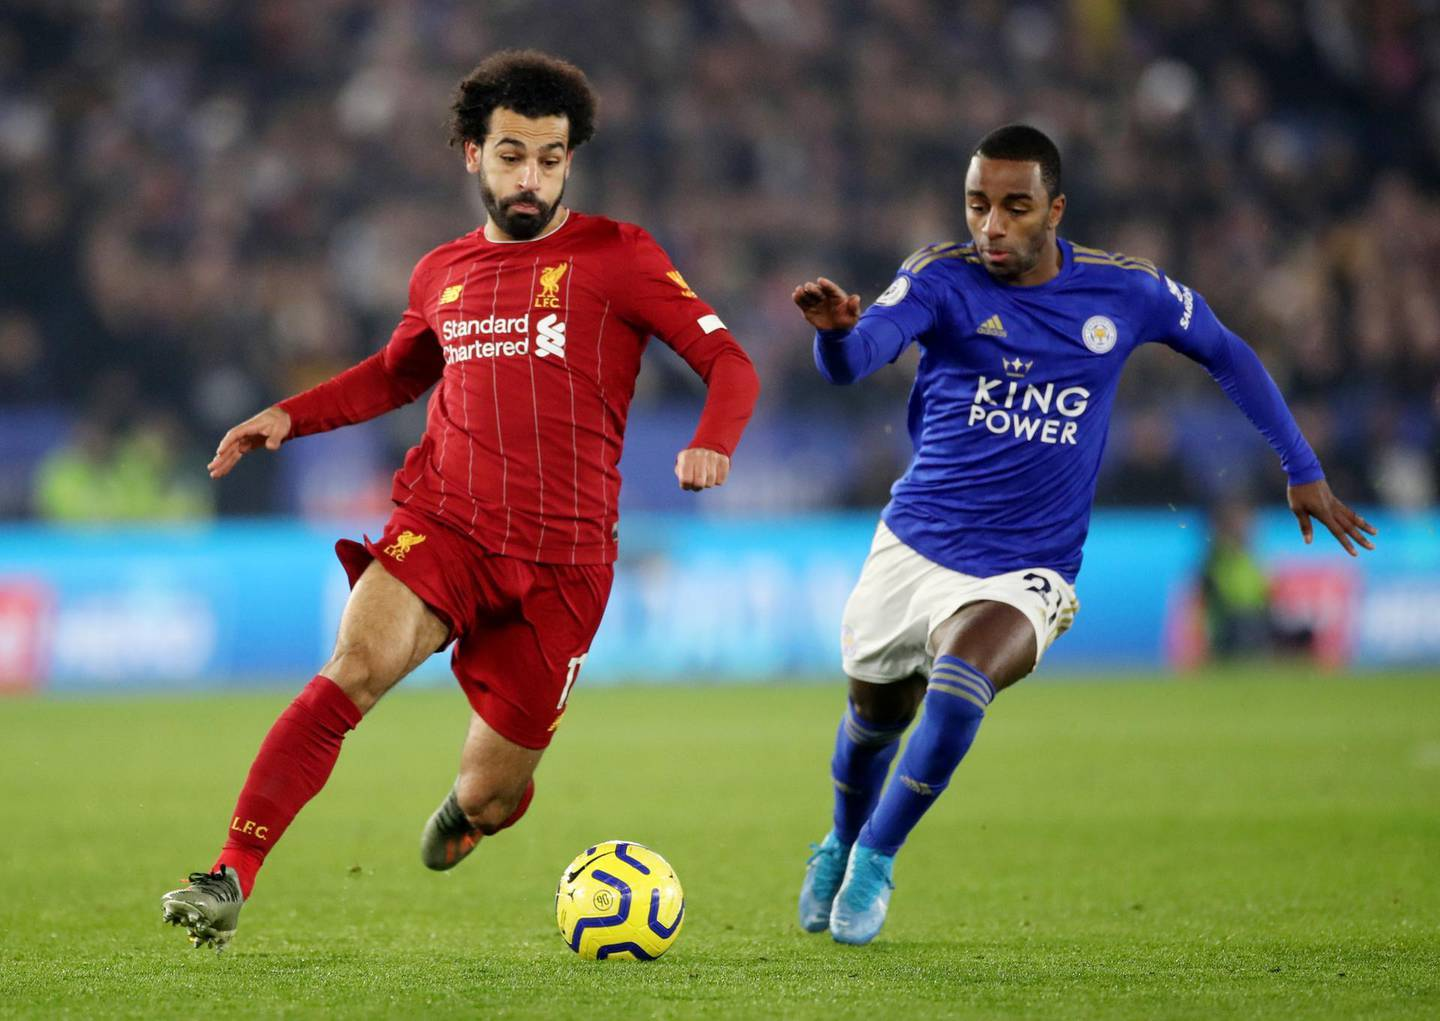 """Soccer Football - Premier League - Leicester City v Liverpool - King Power Stadium, Leicester, Britain - December 26, 2019  Liverpool's Mohamed Salah in action with Leicester City's Ricardo Pereira       Action Images via Reuters/Carl Recine  EDITORIAL USE ONLY. No use with unauthorized audio, video, data, fixture lists, club/league logos or """"live"""" services. Online in-match use limited to 75 images, no video emulation. No use in betting, games or single club/league/player publications.  Please contact your account representative for further details."""